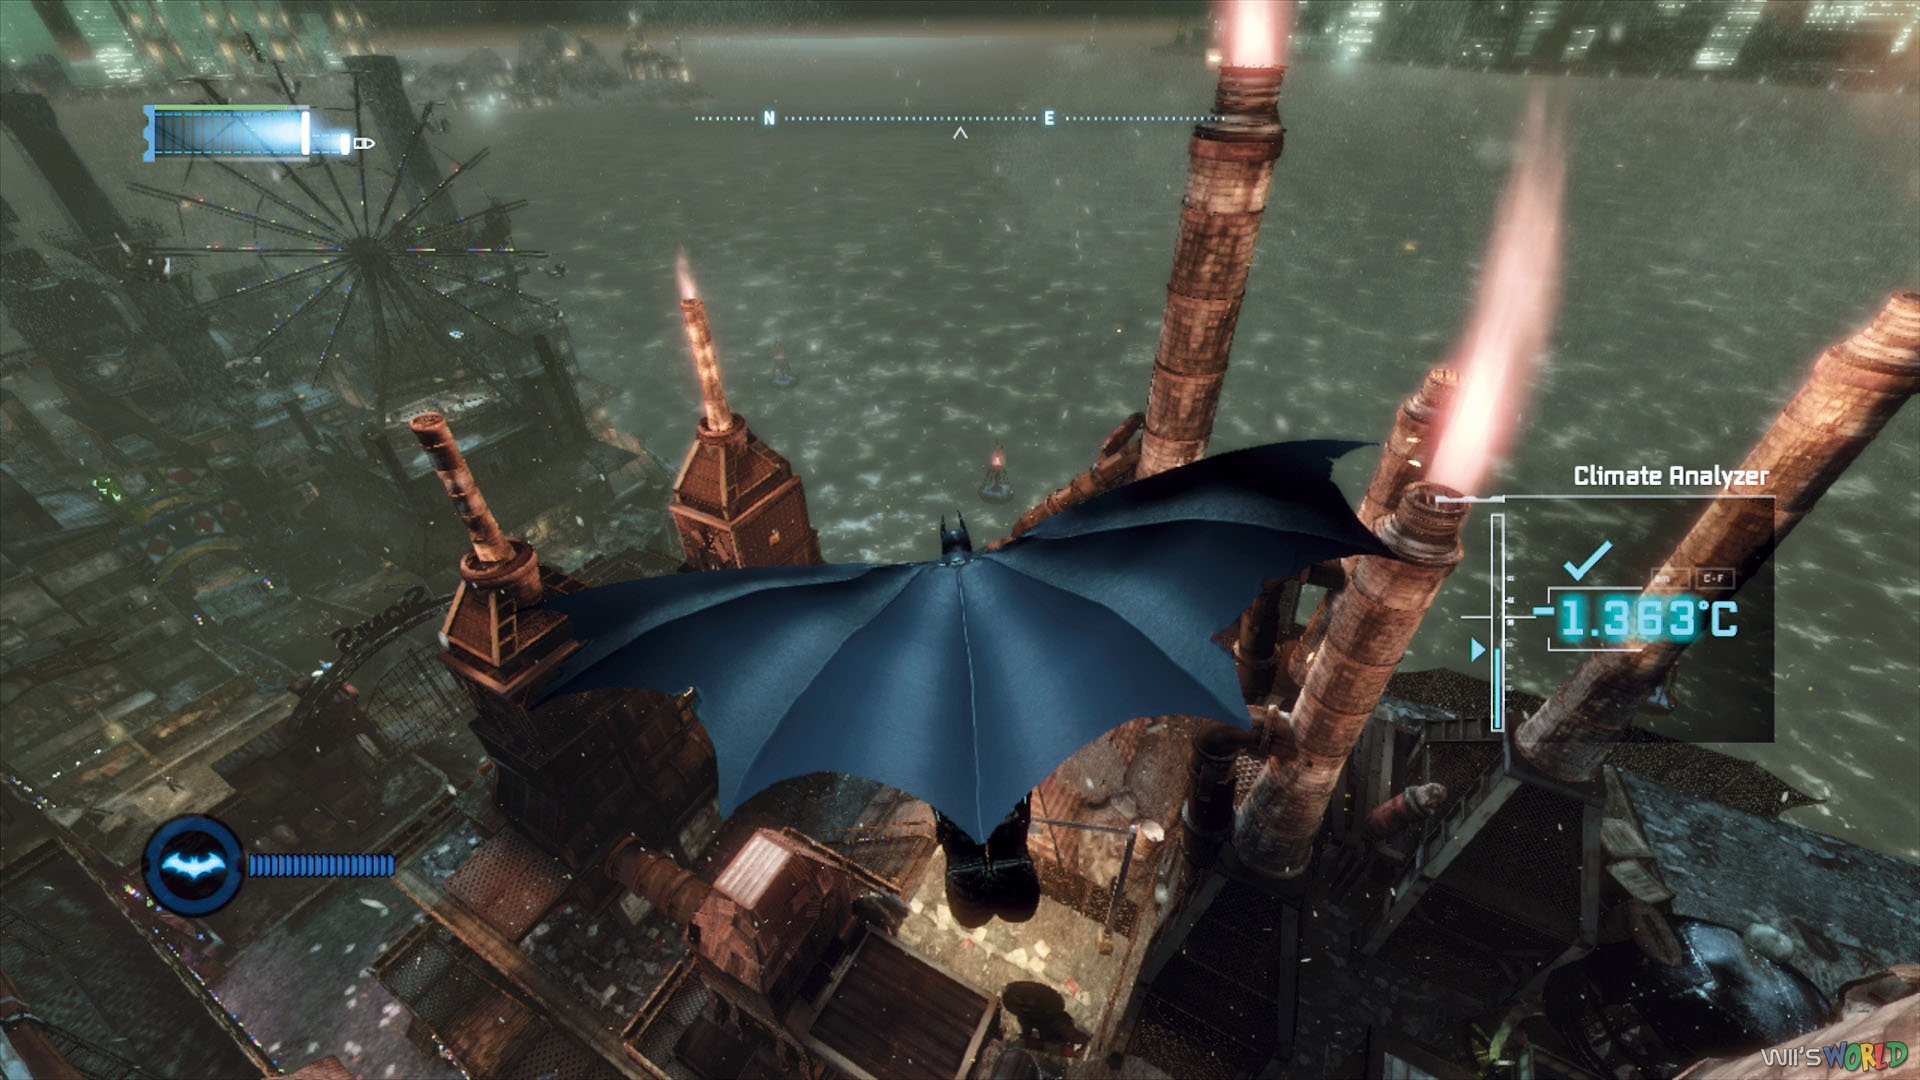 http://www.wiisworld.com/images/screenshots/wii-u/batman-arkham-city-armoured-edition-12.jpg